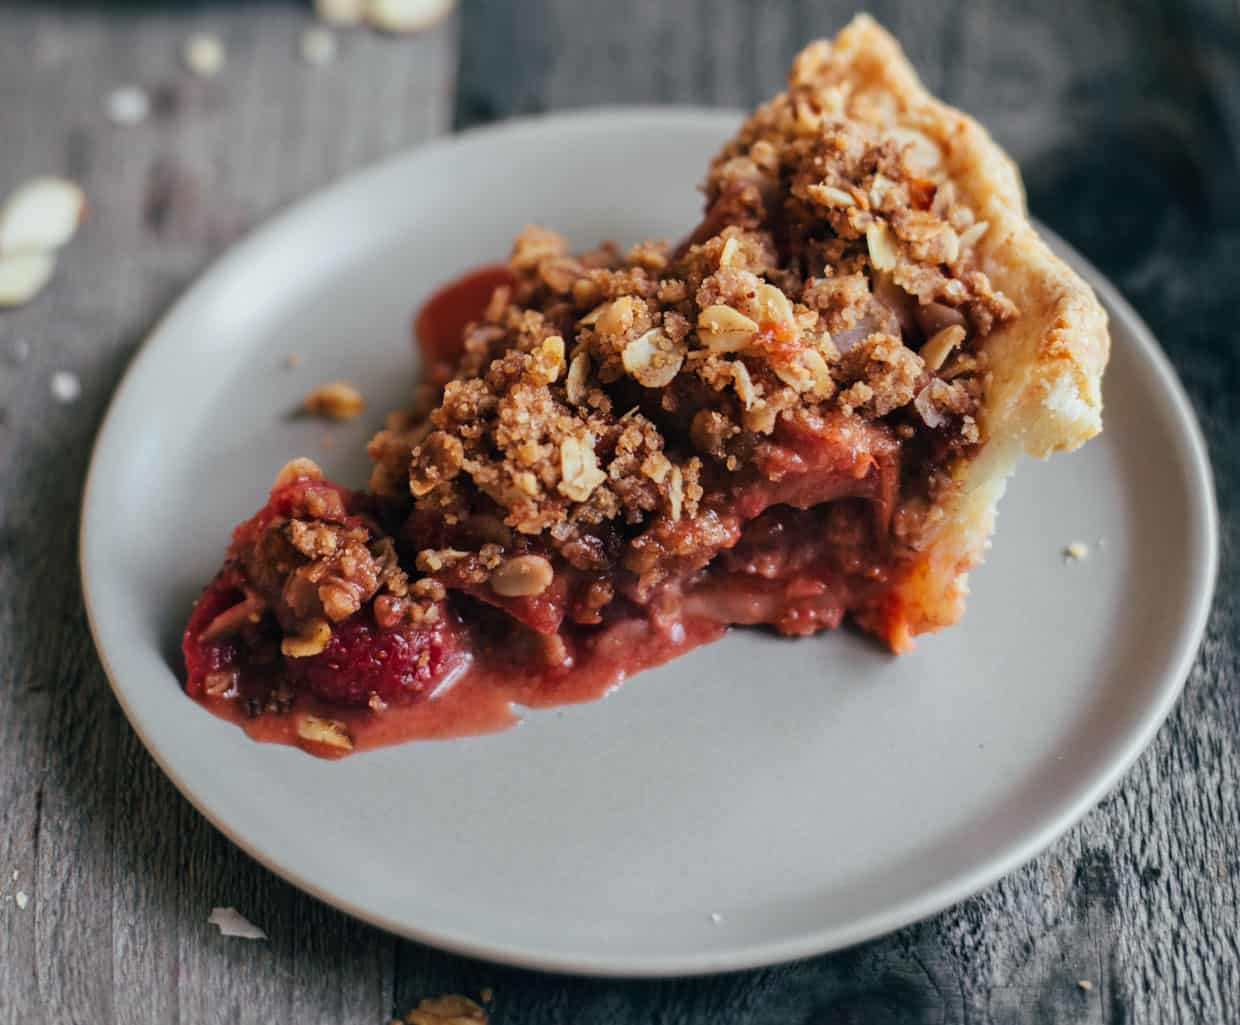 Gluten-Free Strawberry Rhubarb Pie